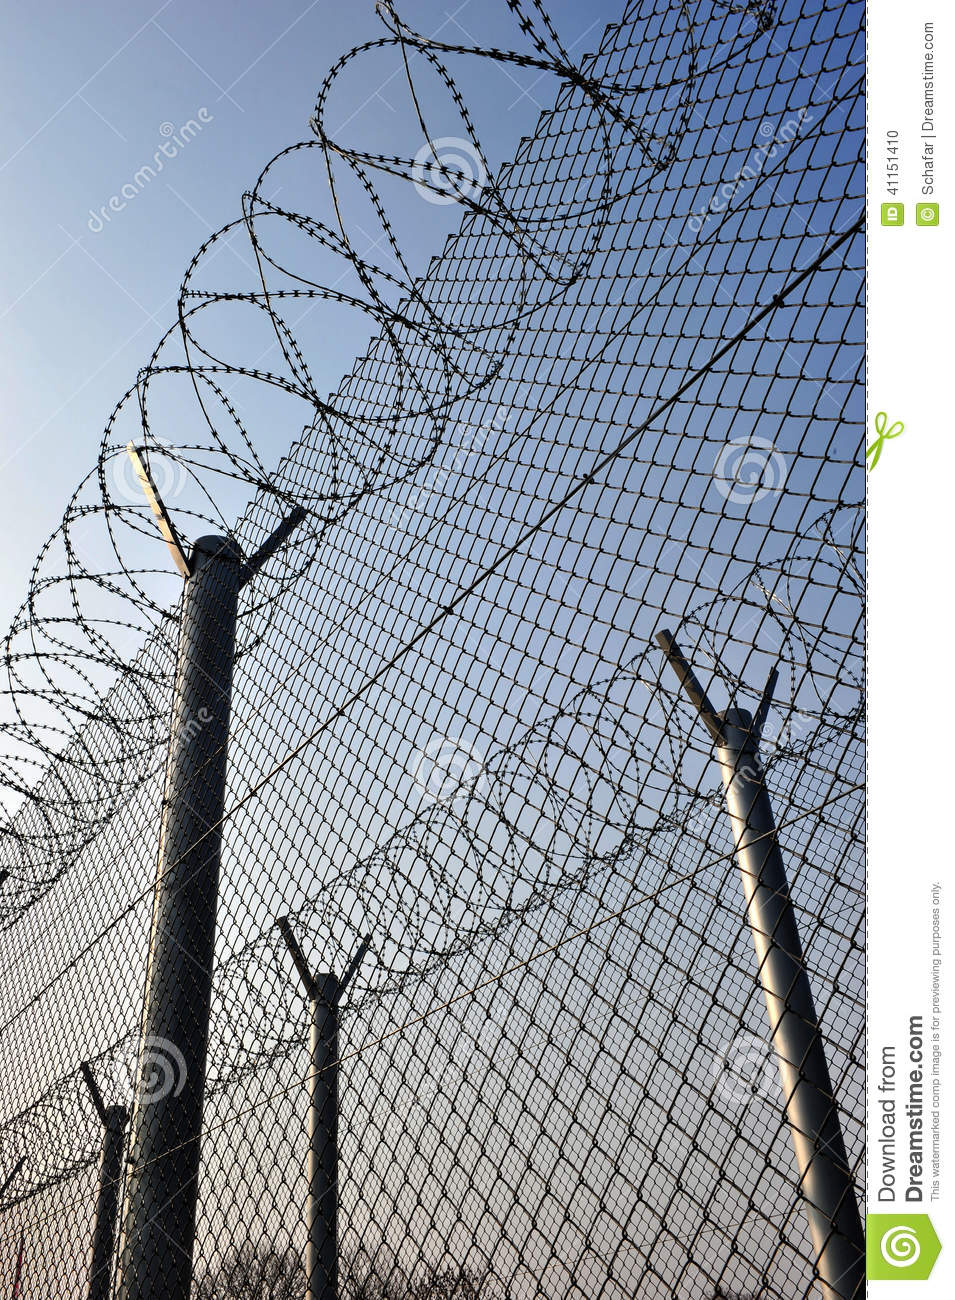 A Barbed Wire Fence With Razor Sharp Wires Stock Photo - Image of ...